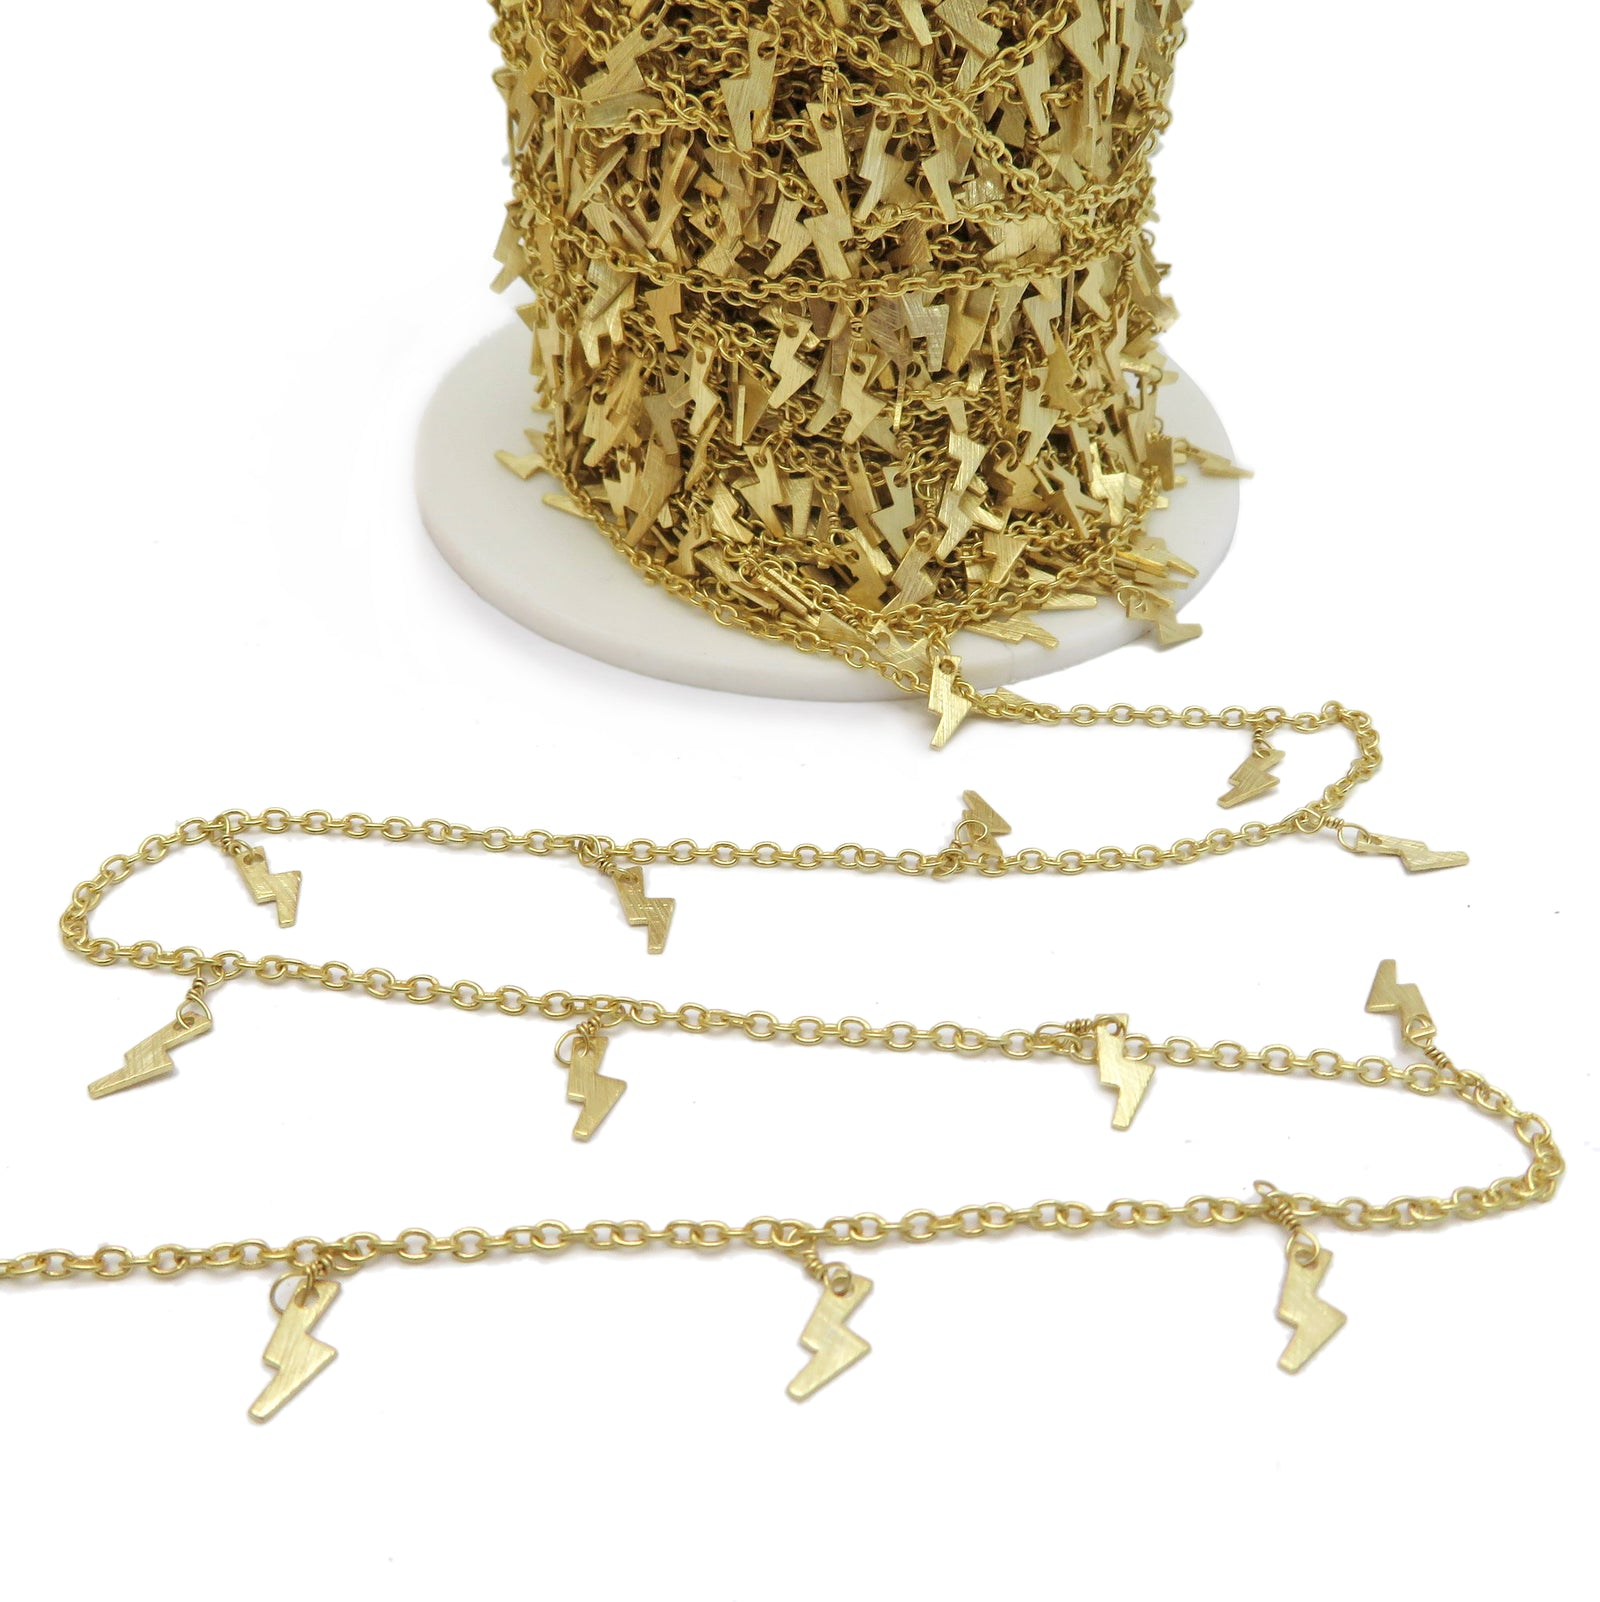 Gold Plated Chain with Dangling Gold Lightening Bolt Charms -- Choose from 1, 3, or 10 feet (CHN-771)